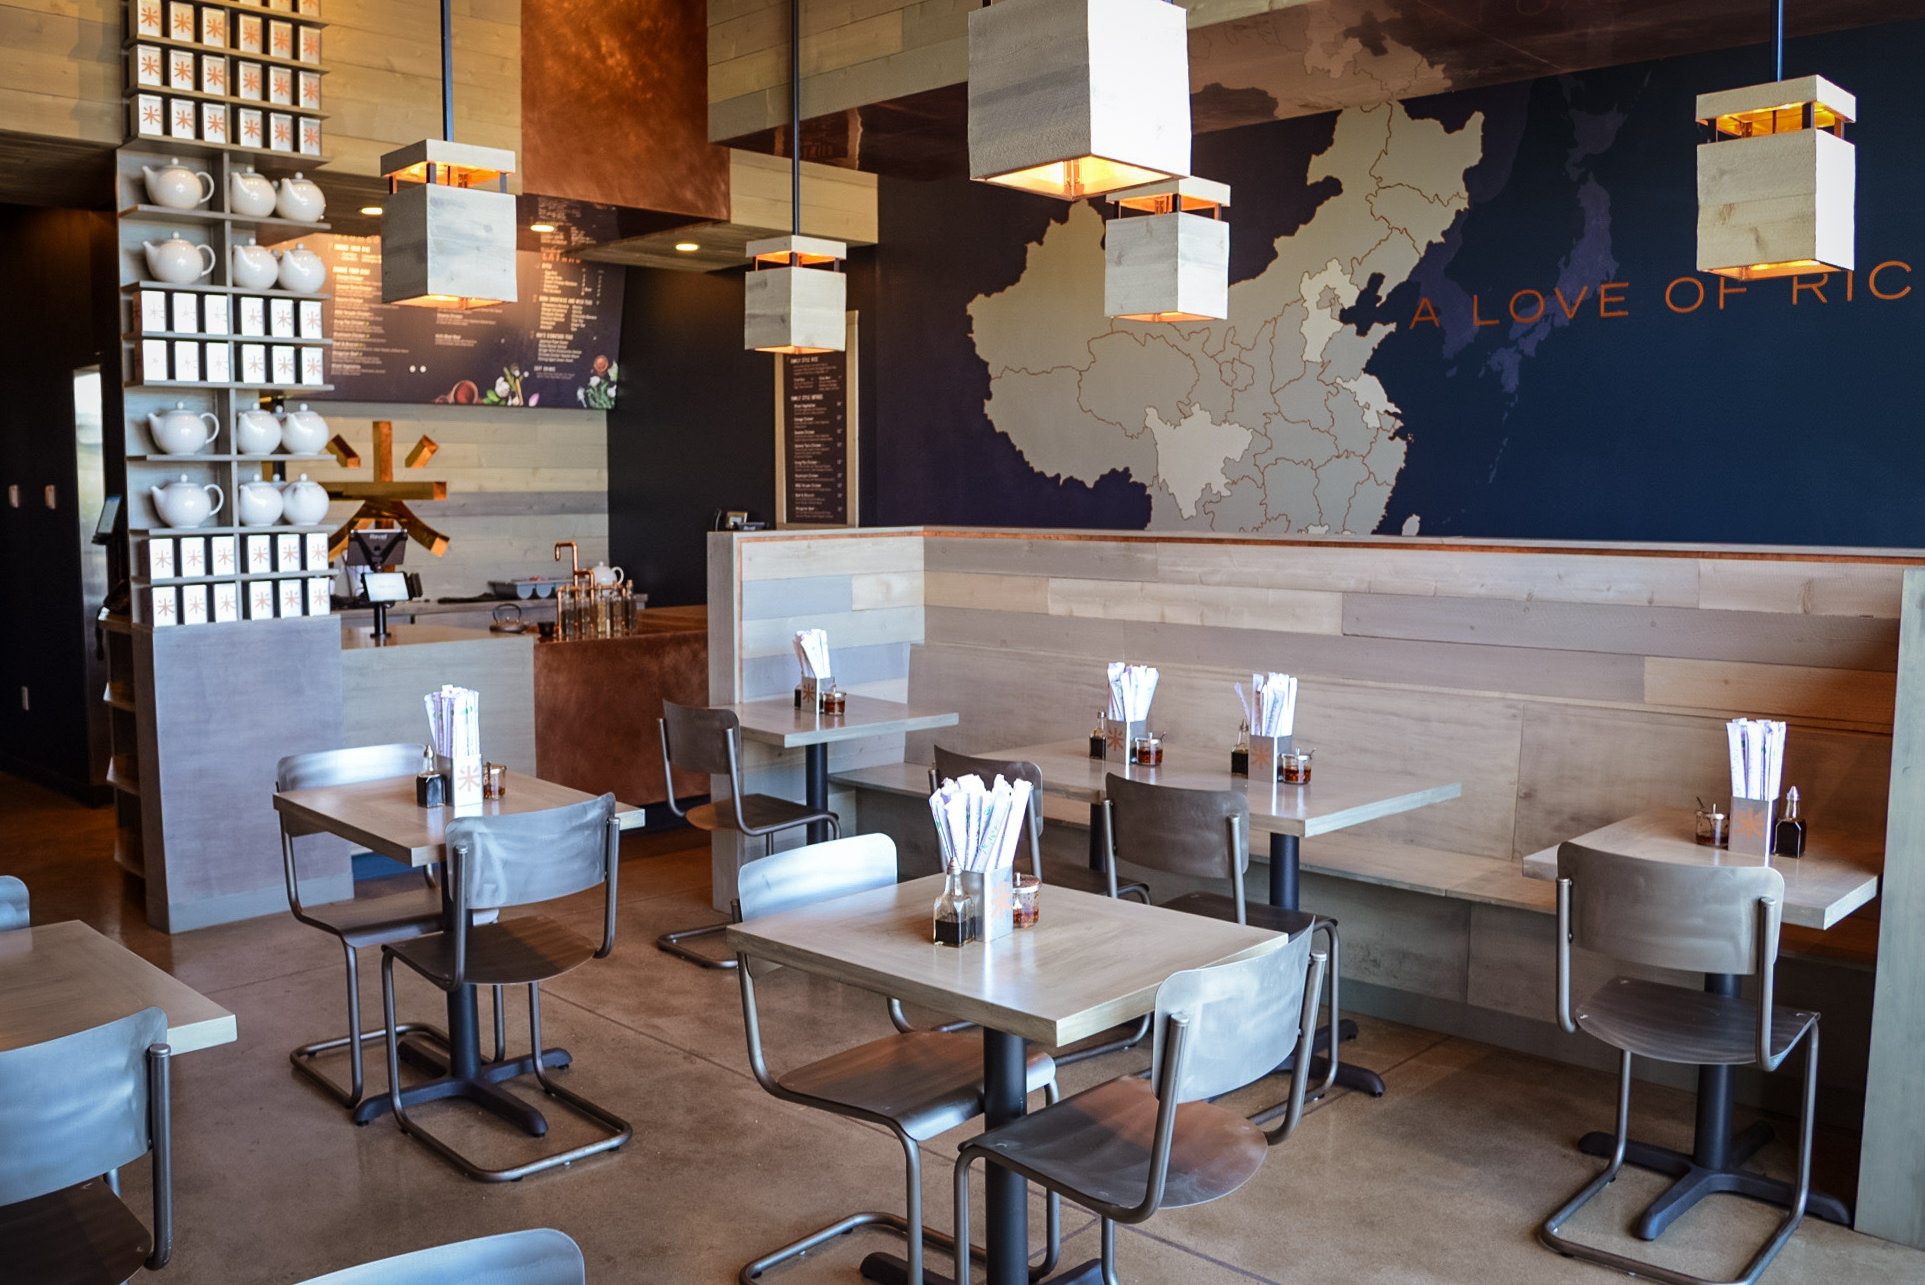 In 2015 me and my company Creative Services Bureau were contacted by Greg Walker of B-WOW to assist in the finishing of Riced, a fast casual restaurant in Utah. We built custom fixtures and did all the custom staining and woodwork.